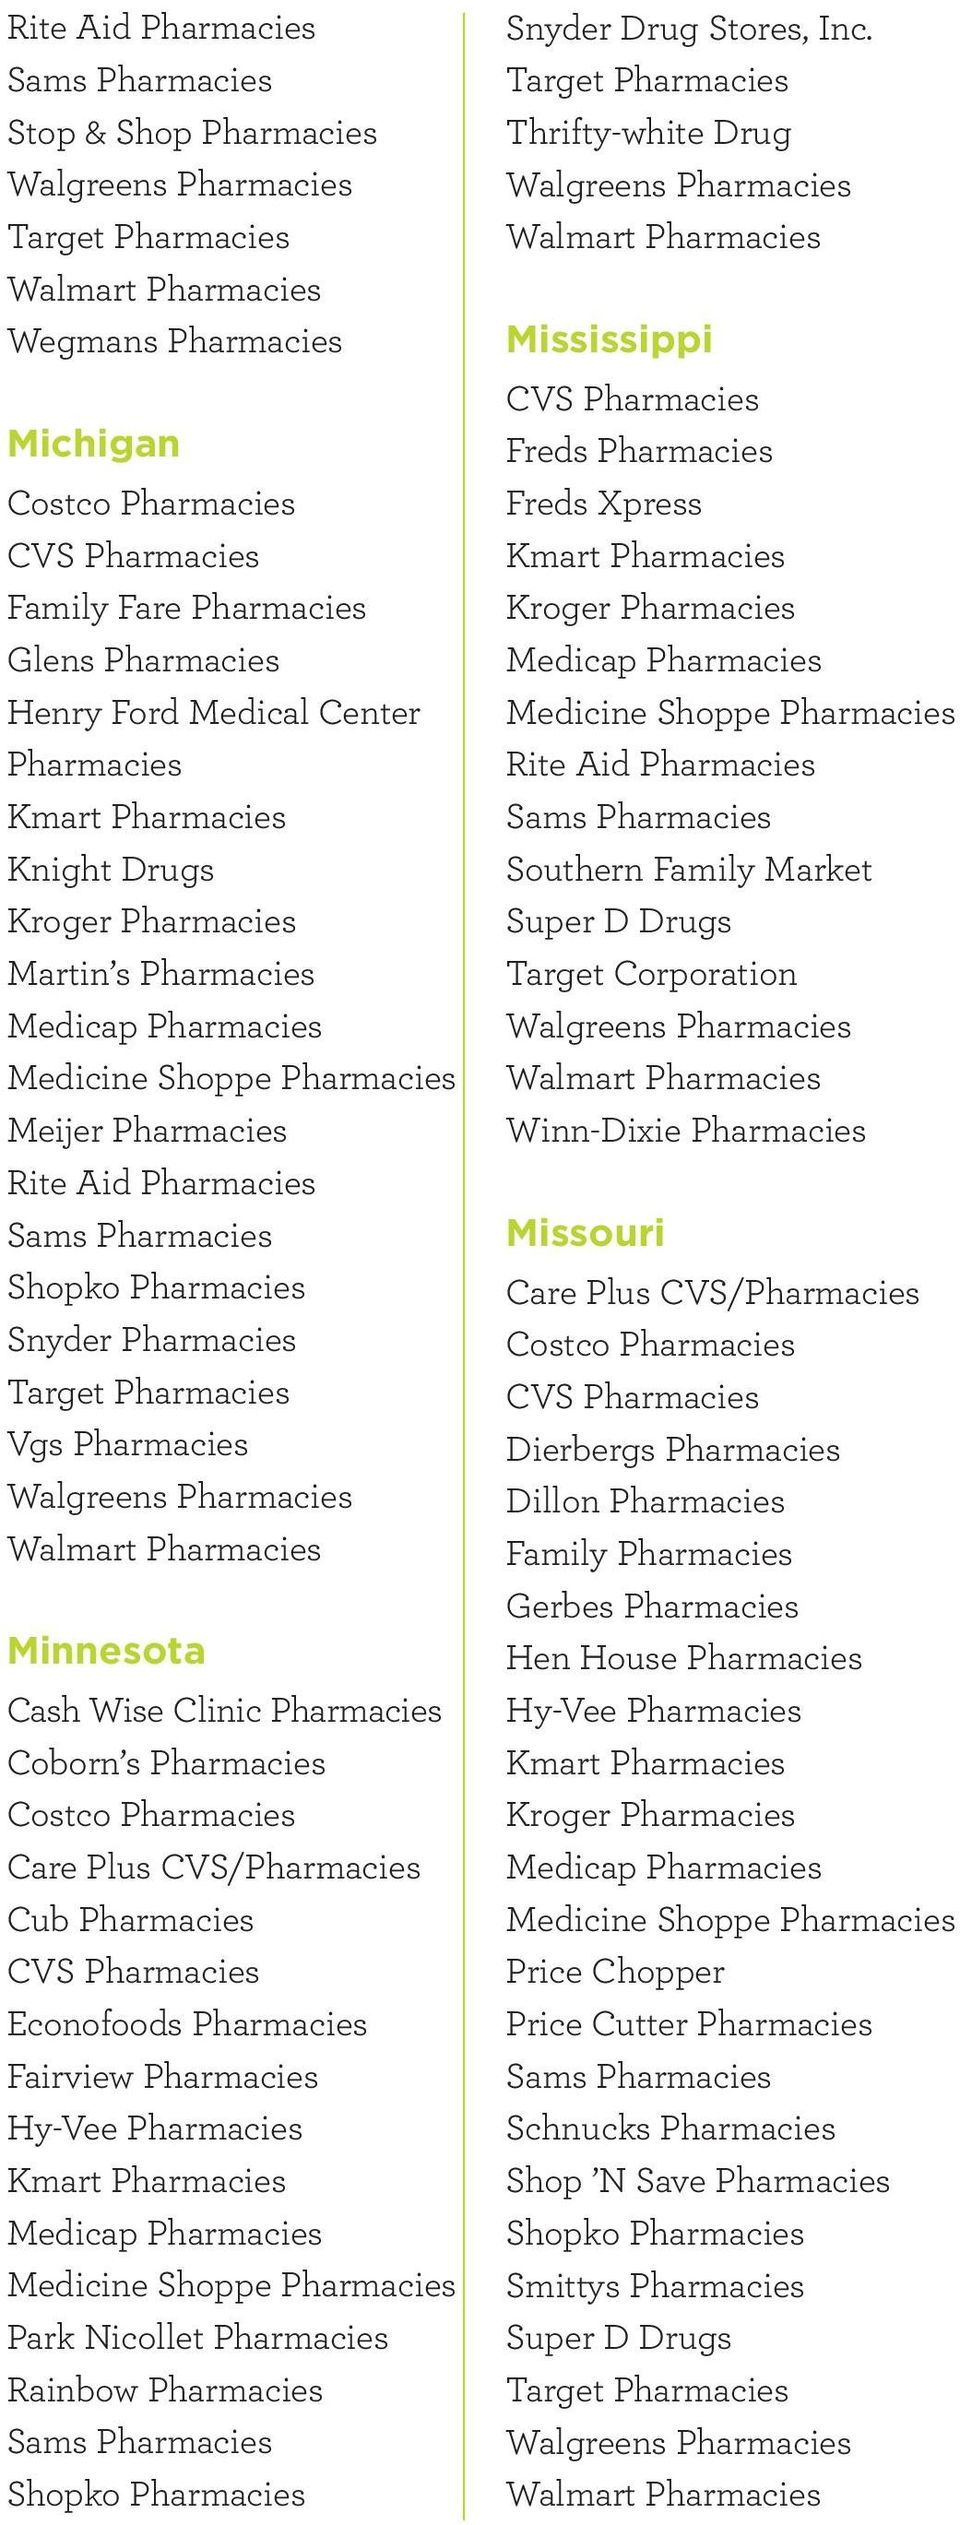 Thrifty-white Drug Mississippi Freds Freds Xpress Southern Family Market Super D Drugs Target Corporation Winn-Dixie